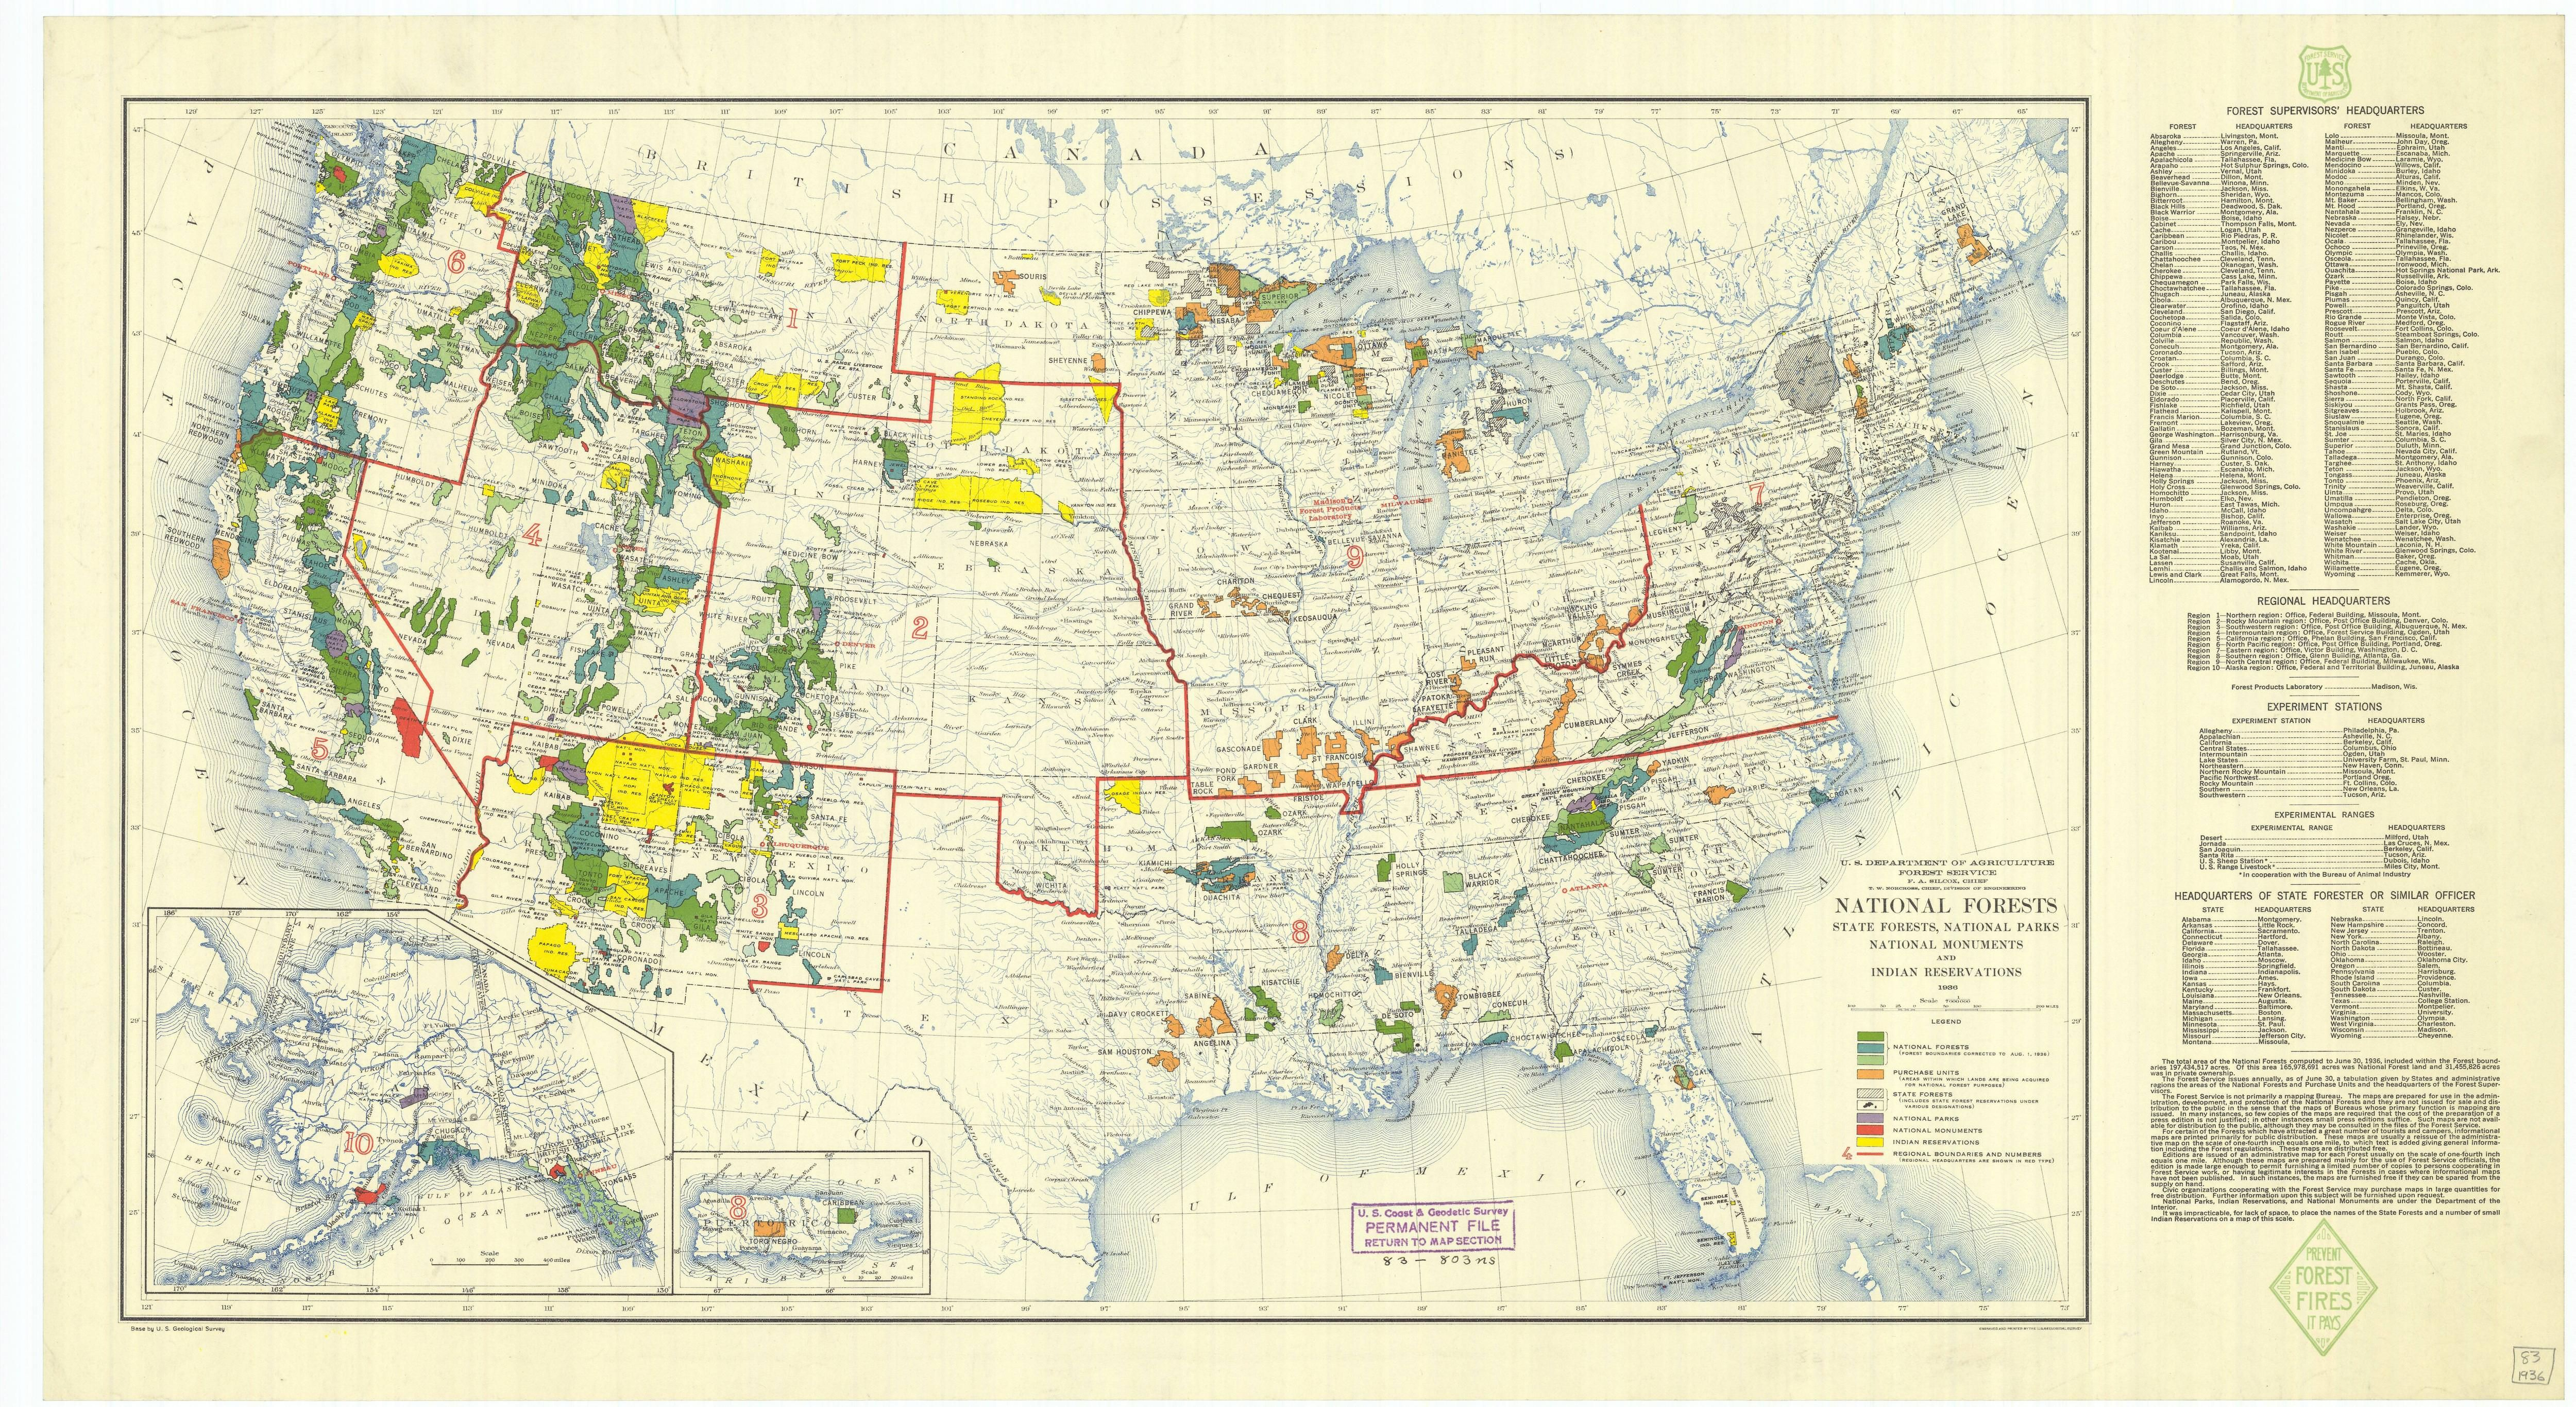 Map of U.S. National Forests, State Forests, National Parks ...